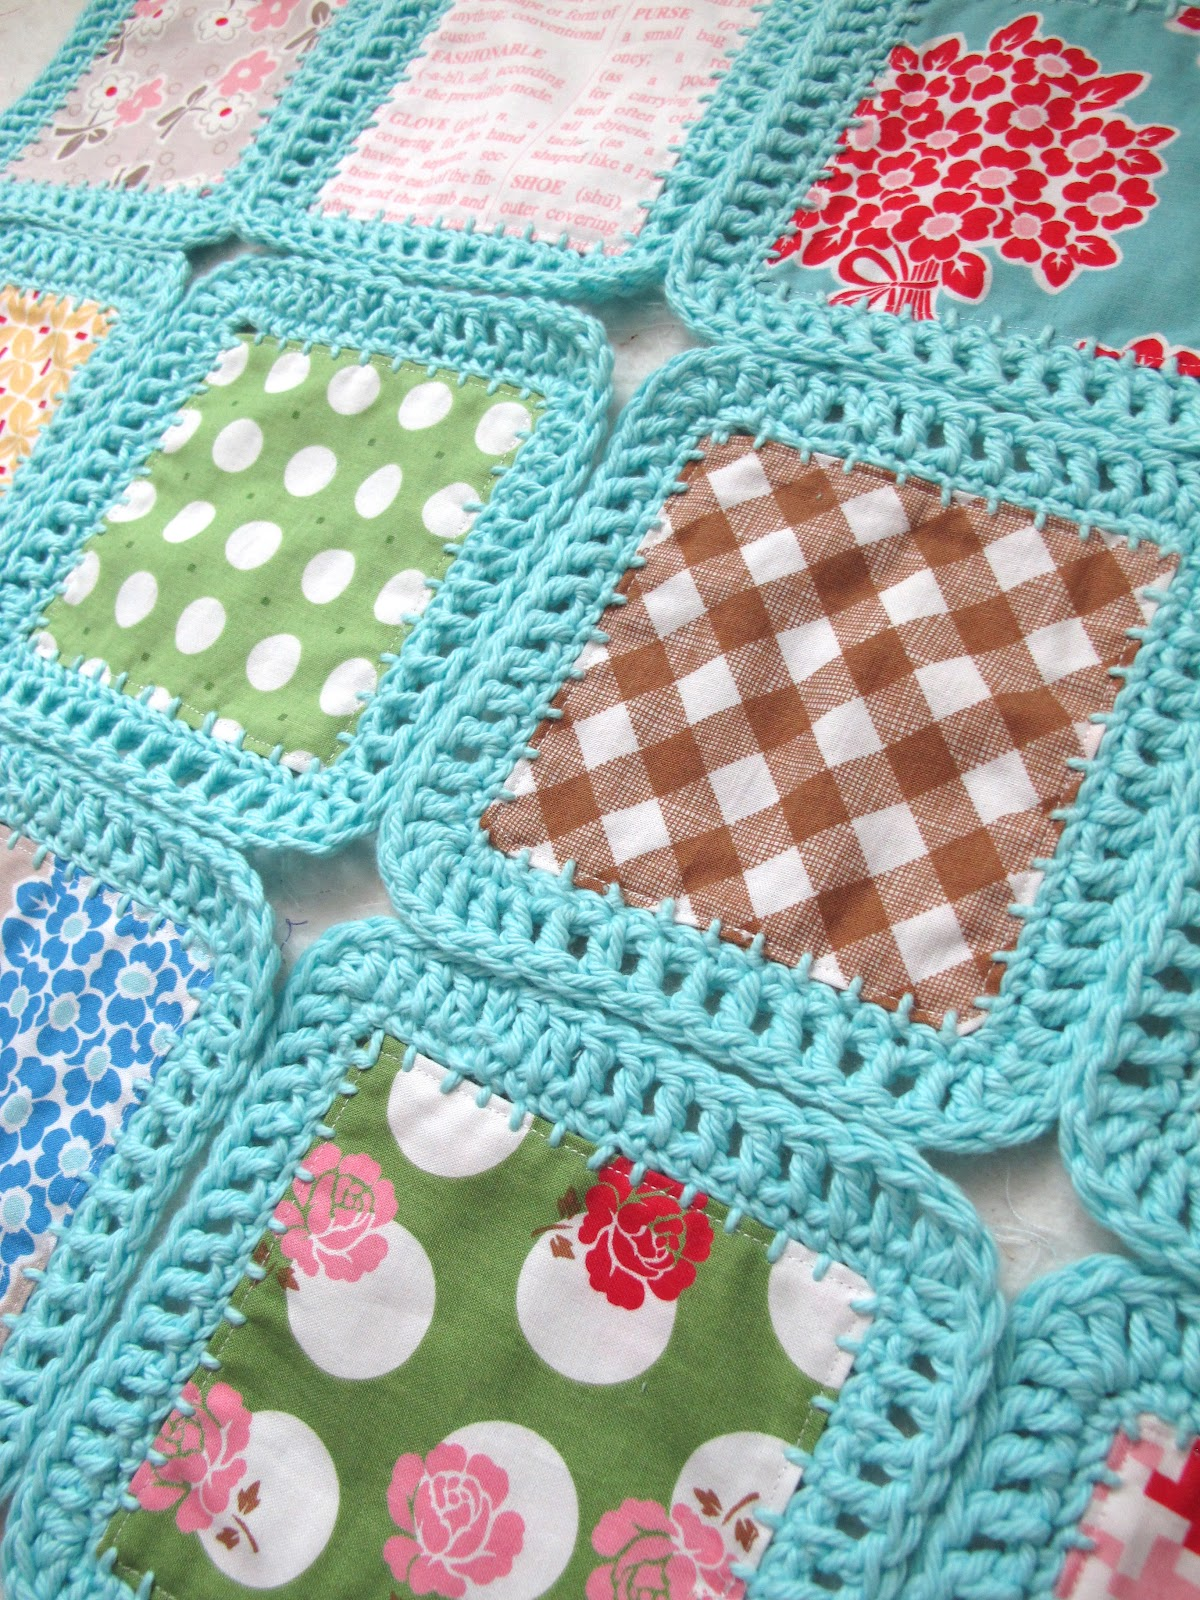 squares of fabric with crocheted edgings